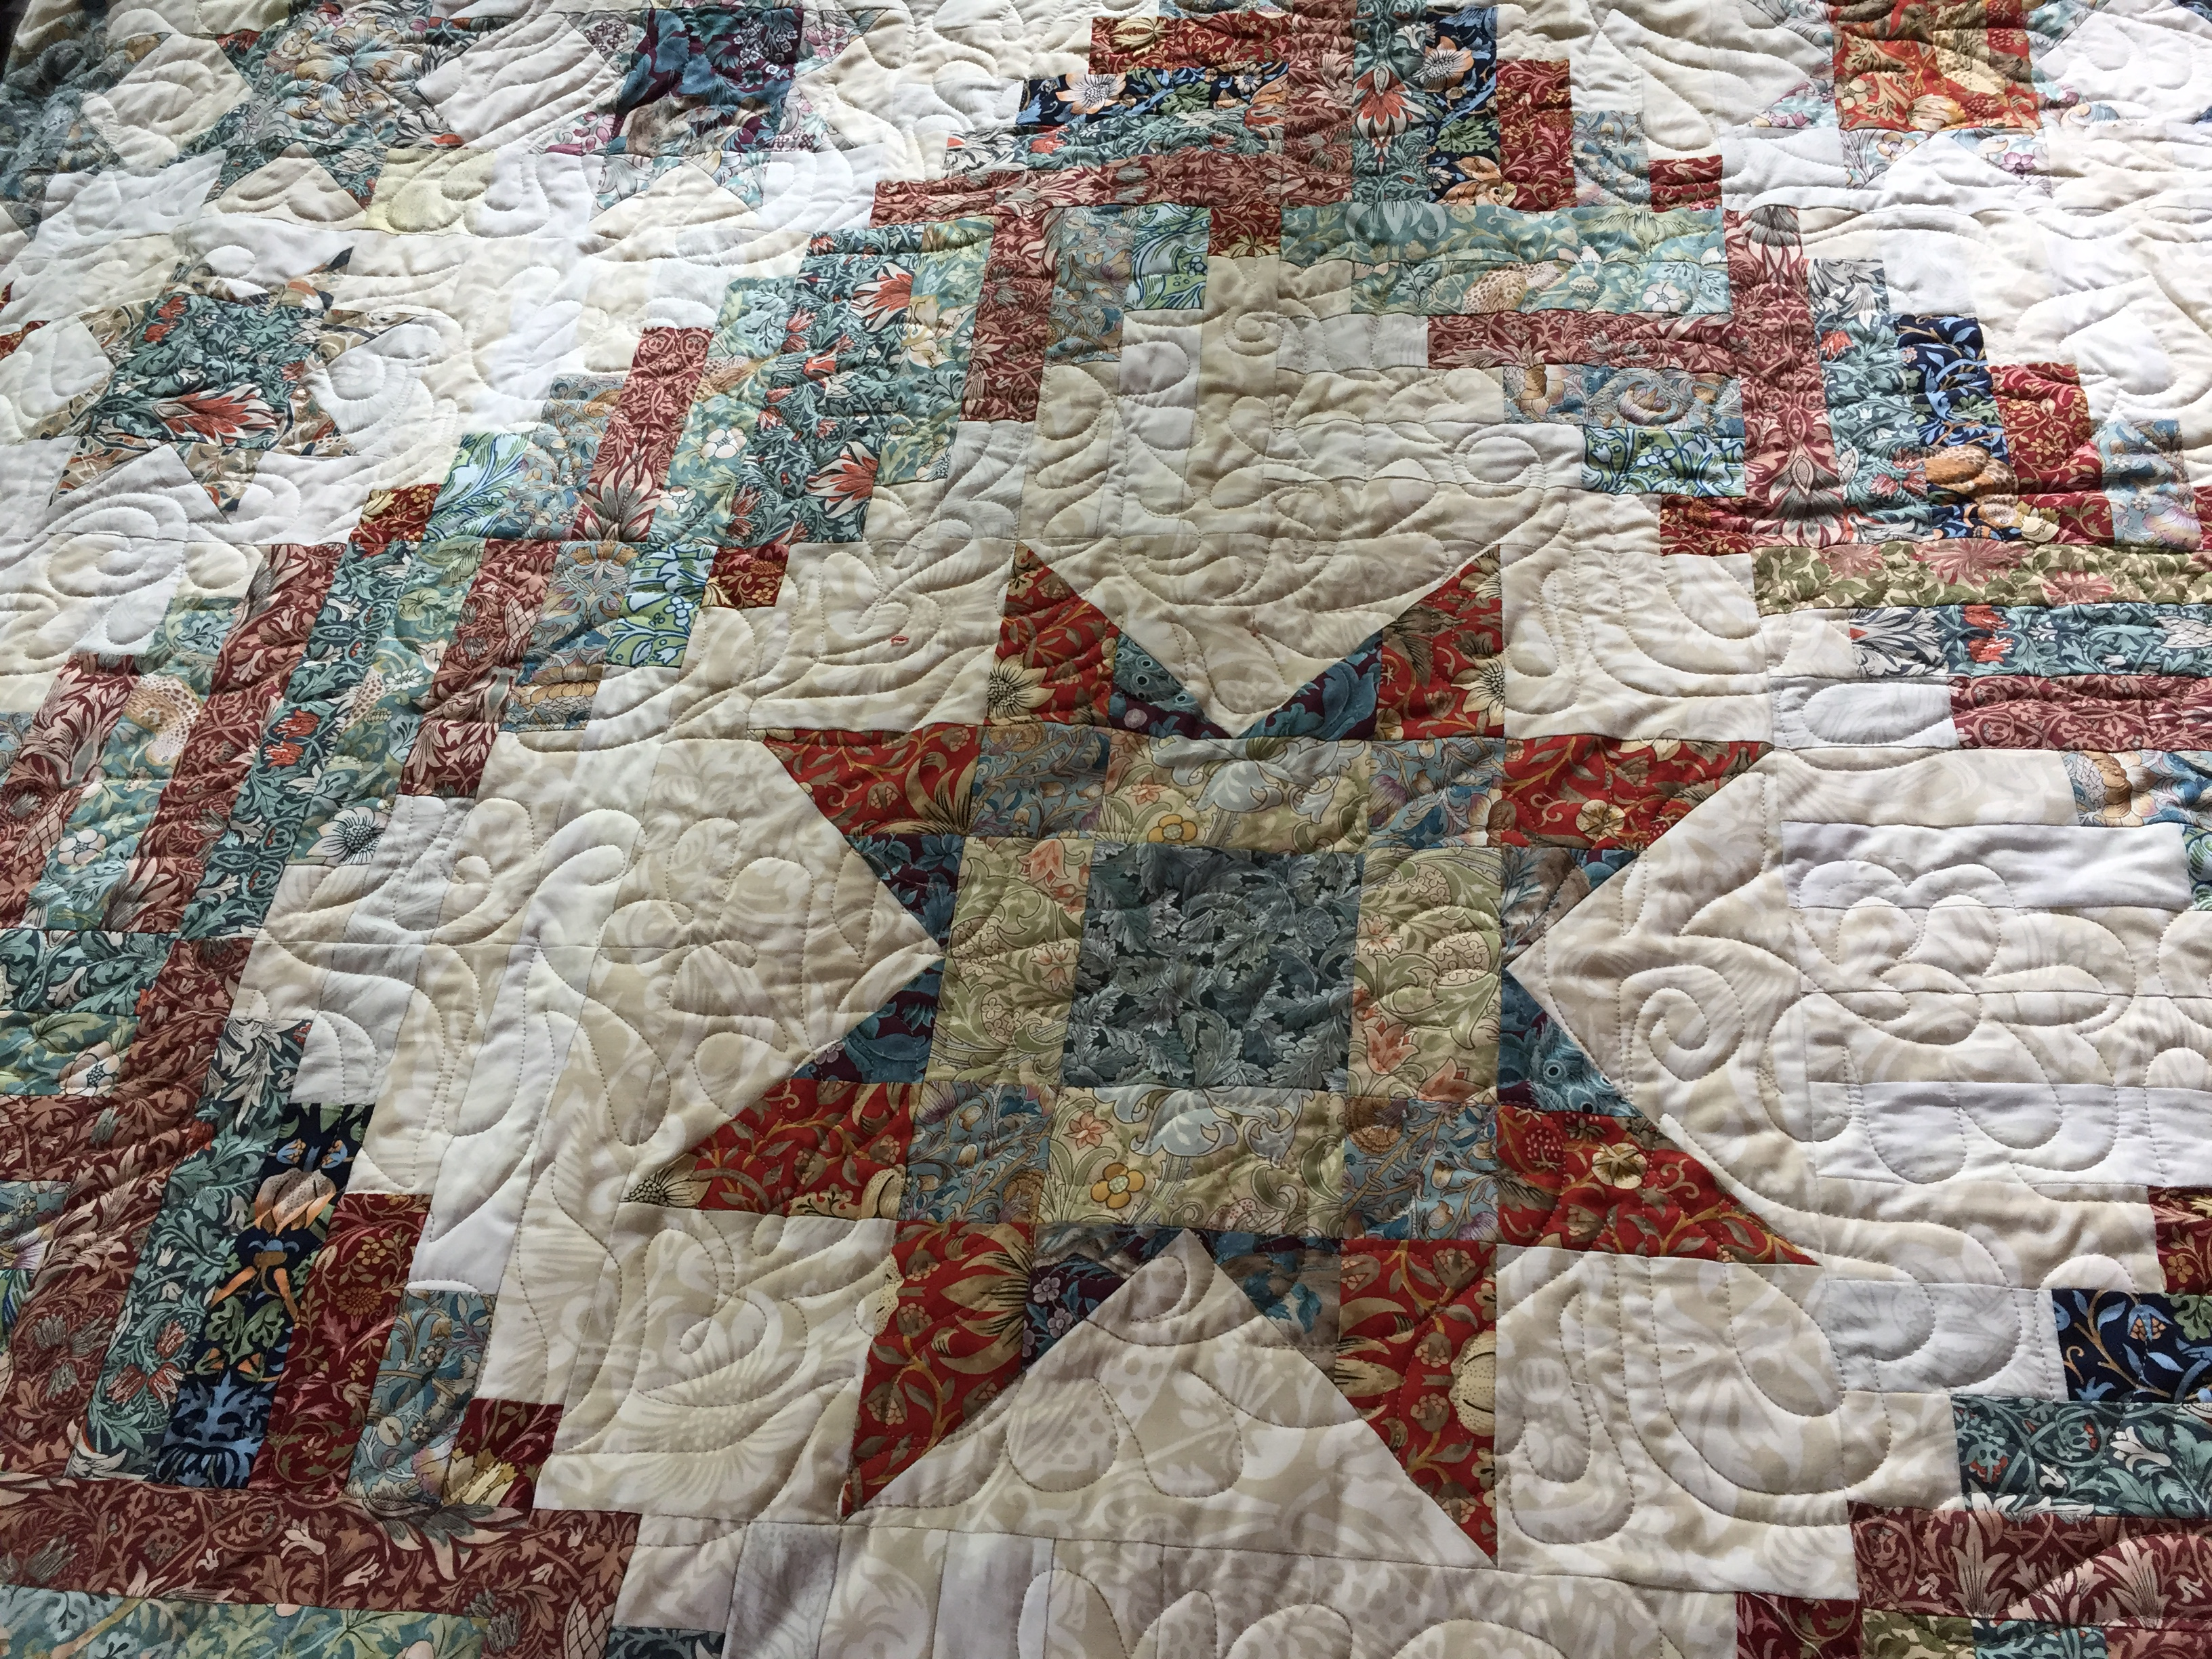 2020 sale quilt center star.JPG